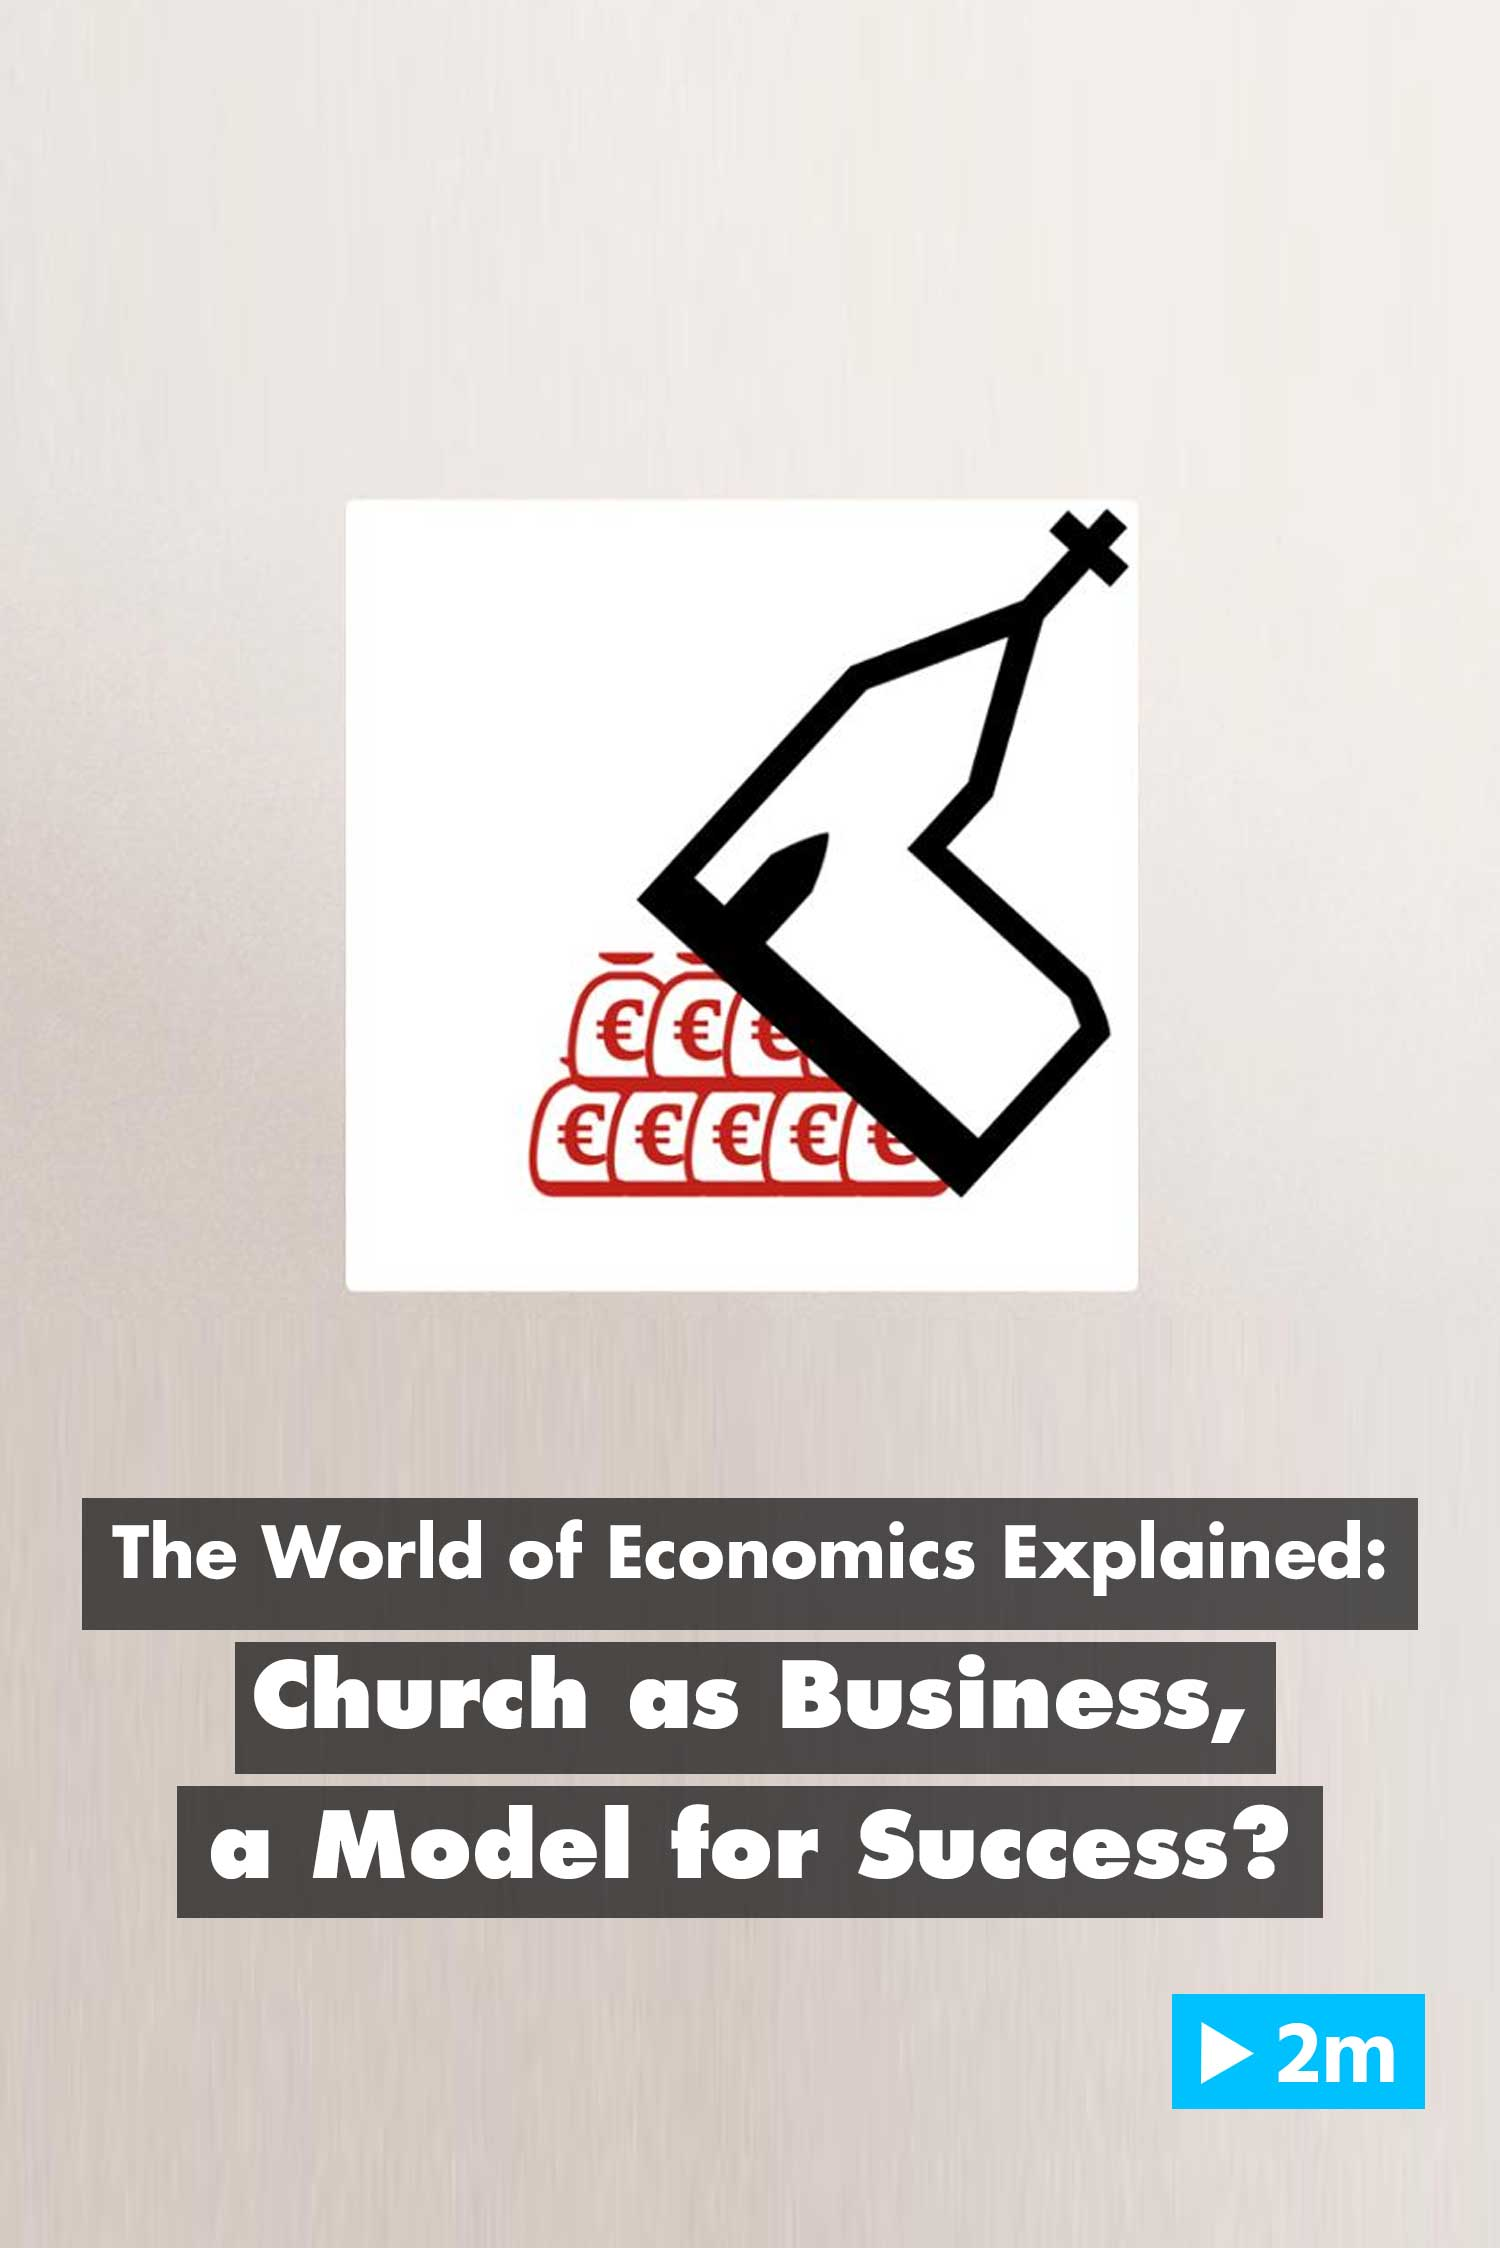 The World of Economics Explained: Church business, a model for success